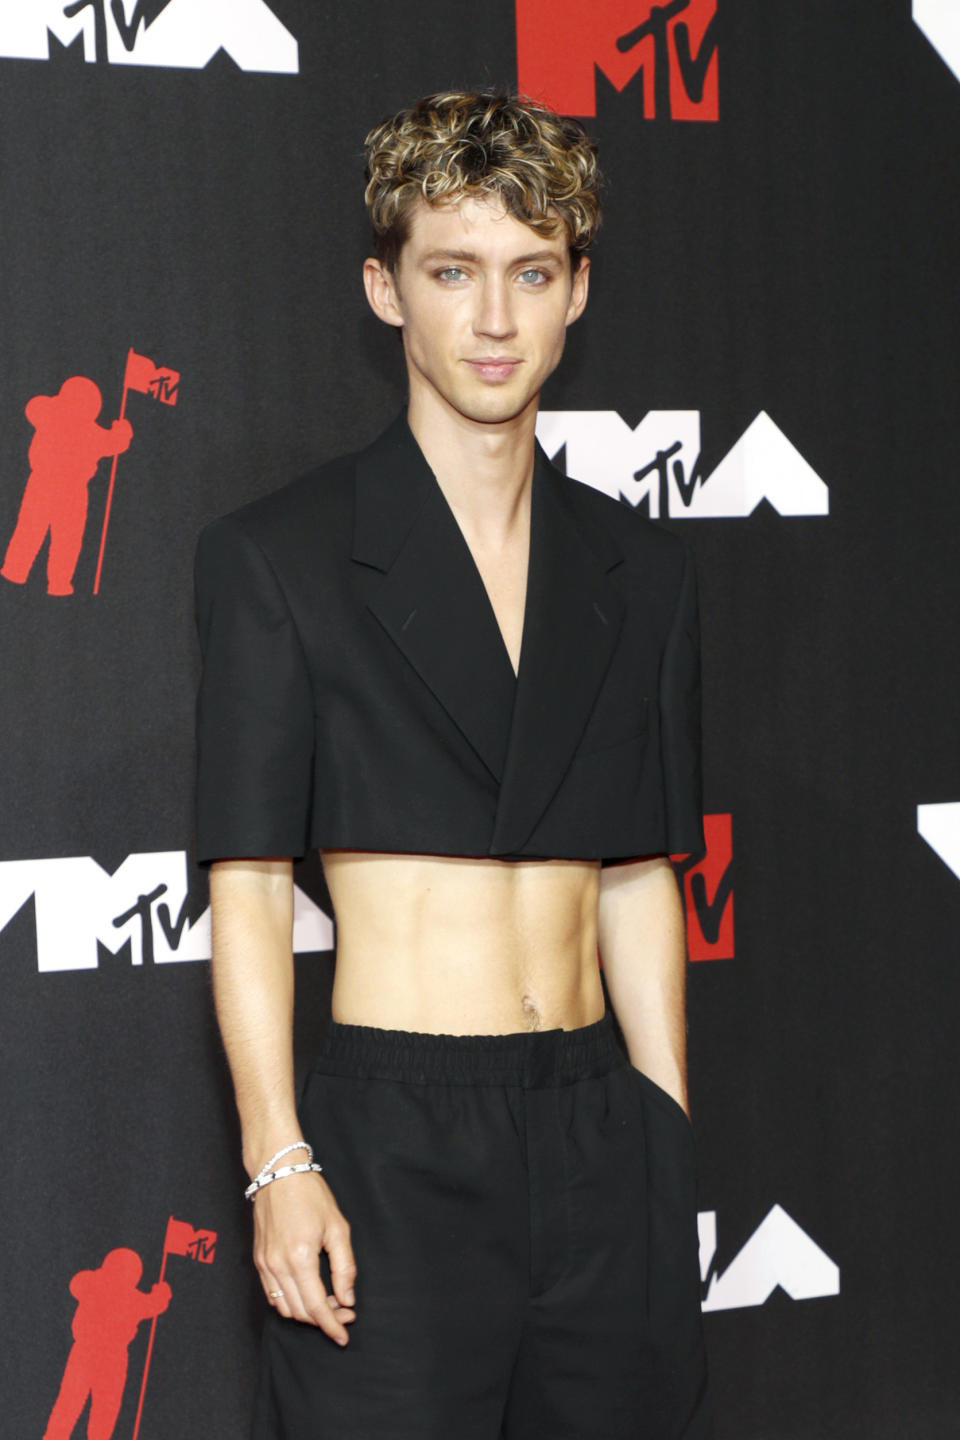 Troye Sivan attends the 2021 MTV Video Music Awards